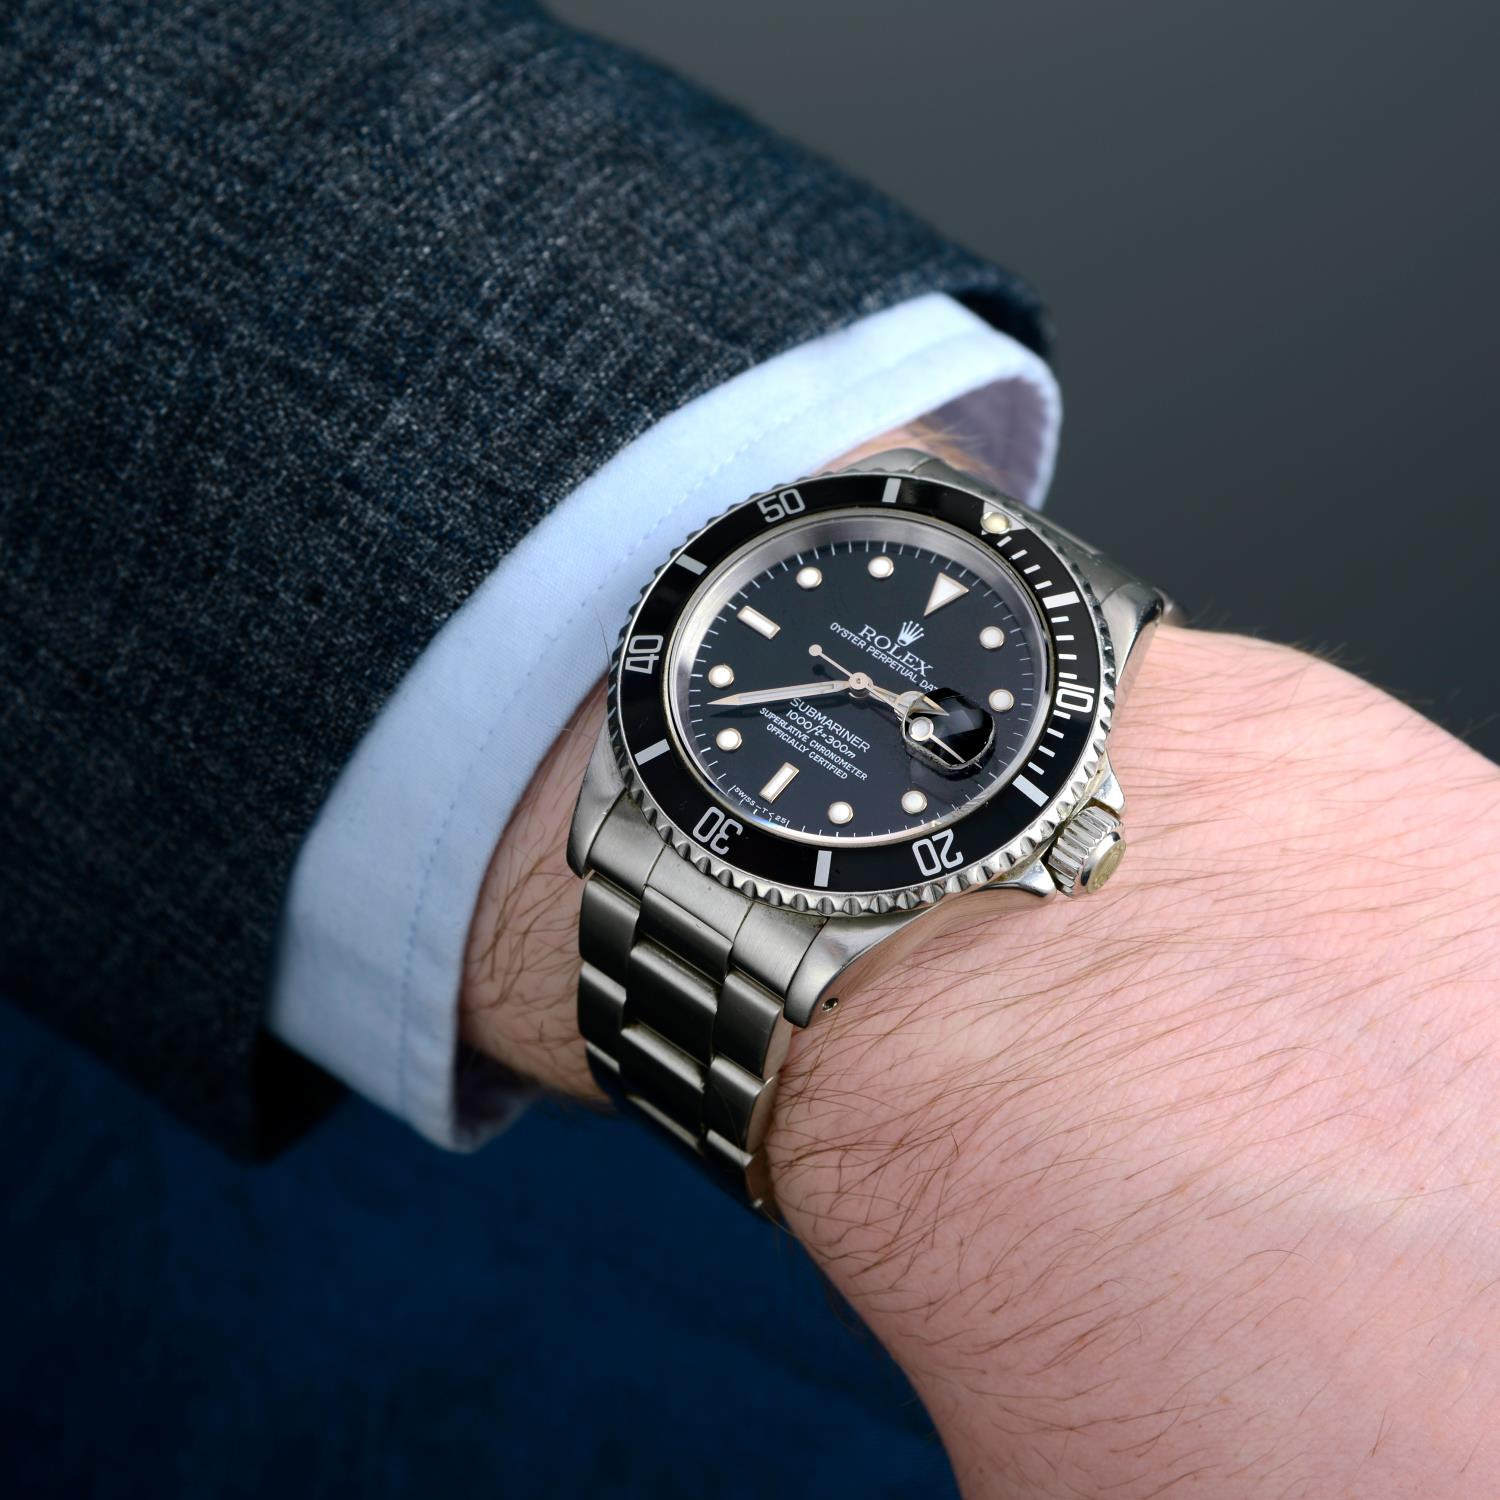 ROLEX - an Oyster Perpetual Date Submariner bracelet watch. - Image 3 of 5